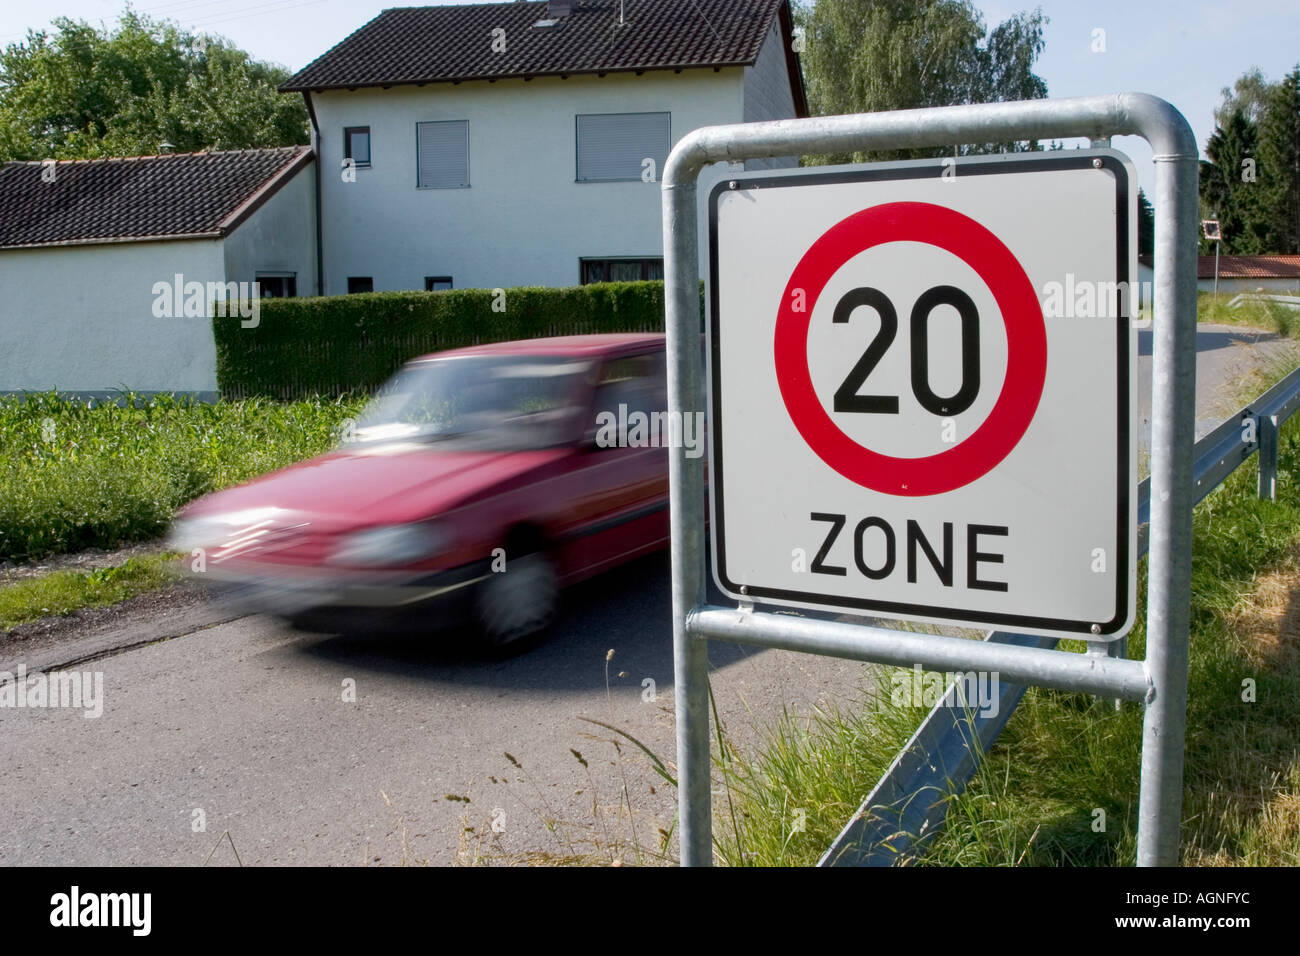 Markt Schwaben, GER, 26. June 2006 - A car passes a sign which marks the begin of a speed limited zone in Markt Stock Photo